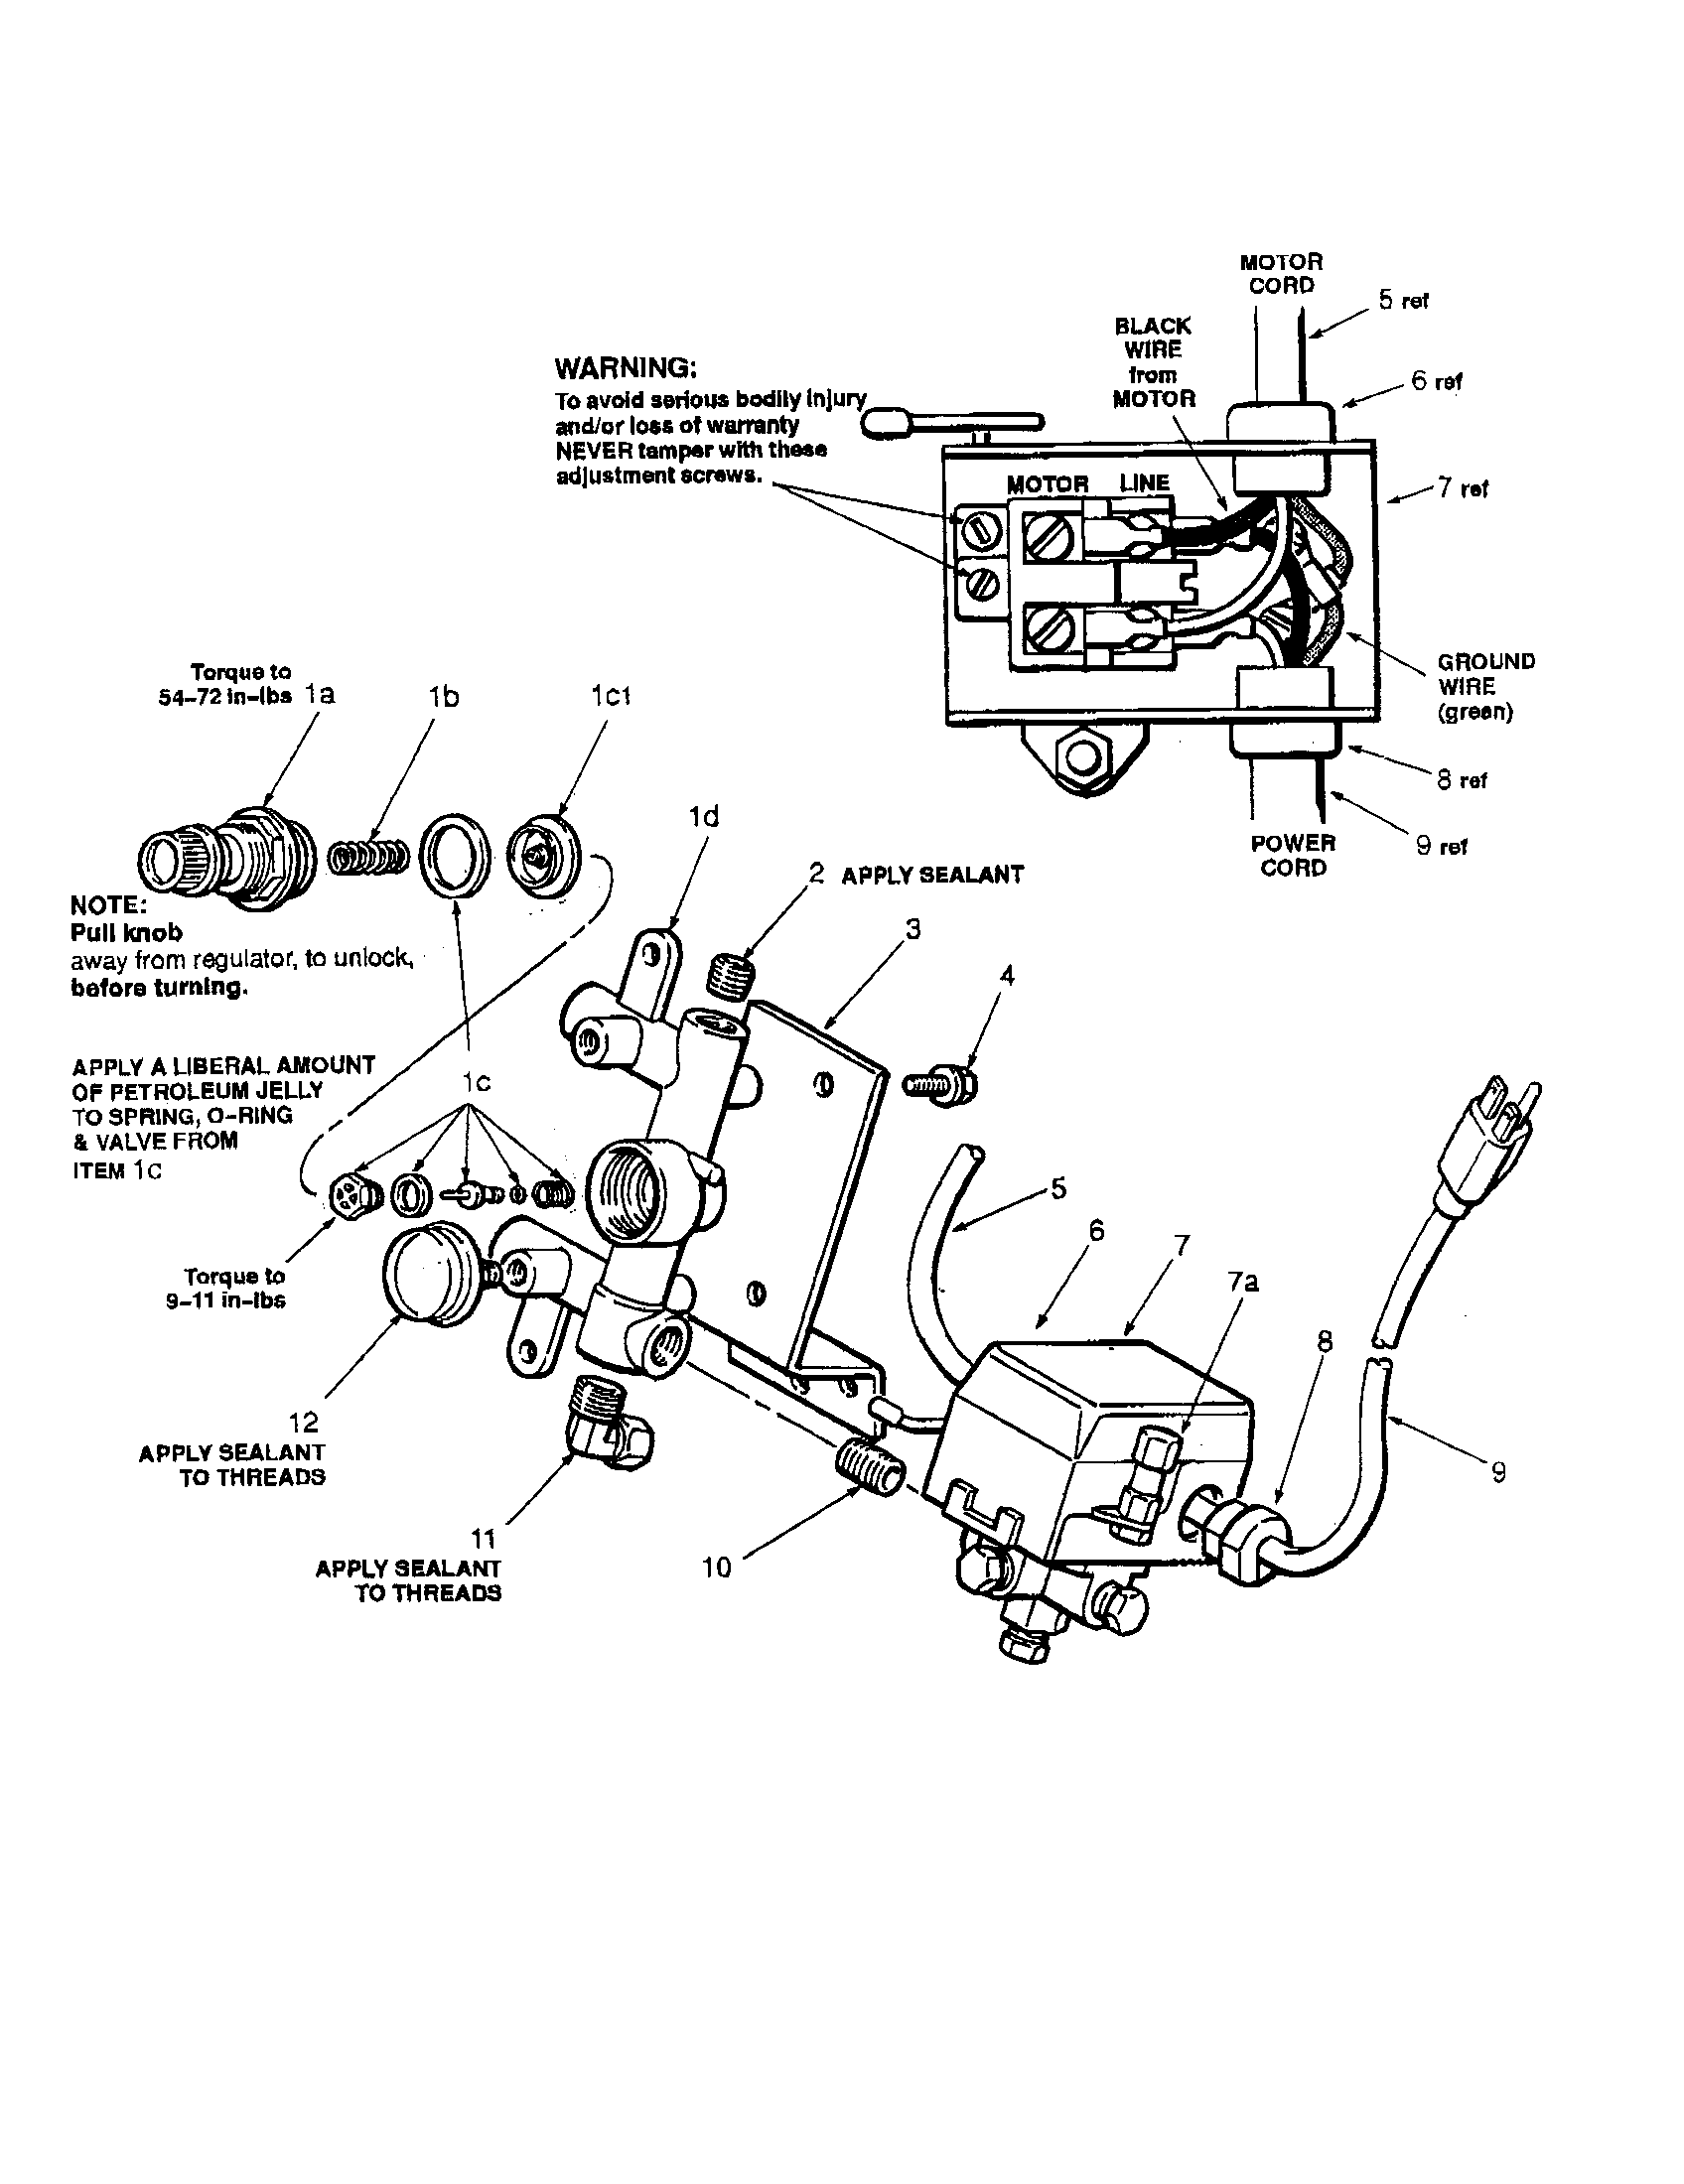 Sanborn 60 Gallon Air Compressor Wiring Diagram Sanborn